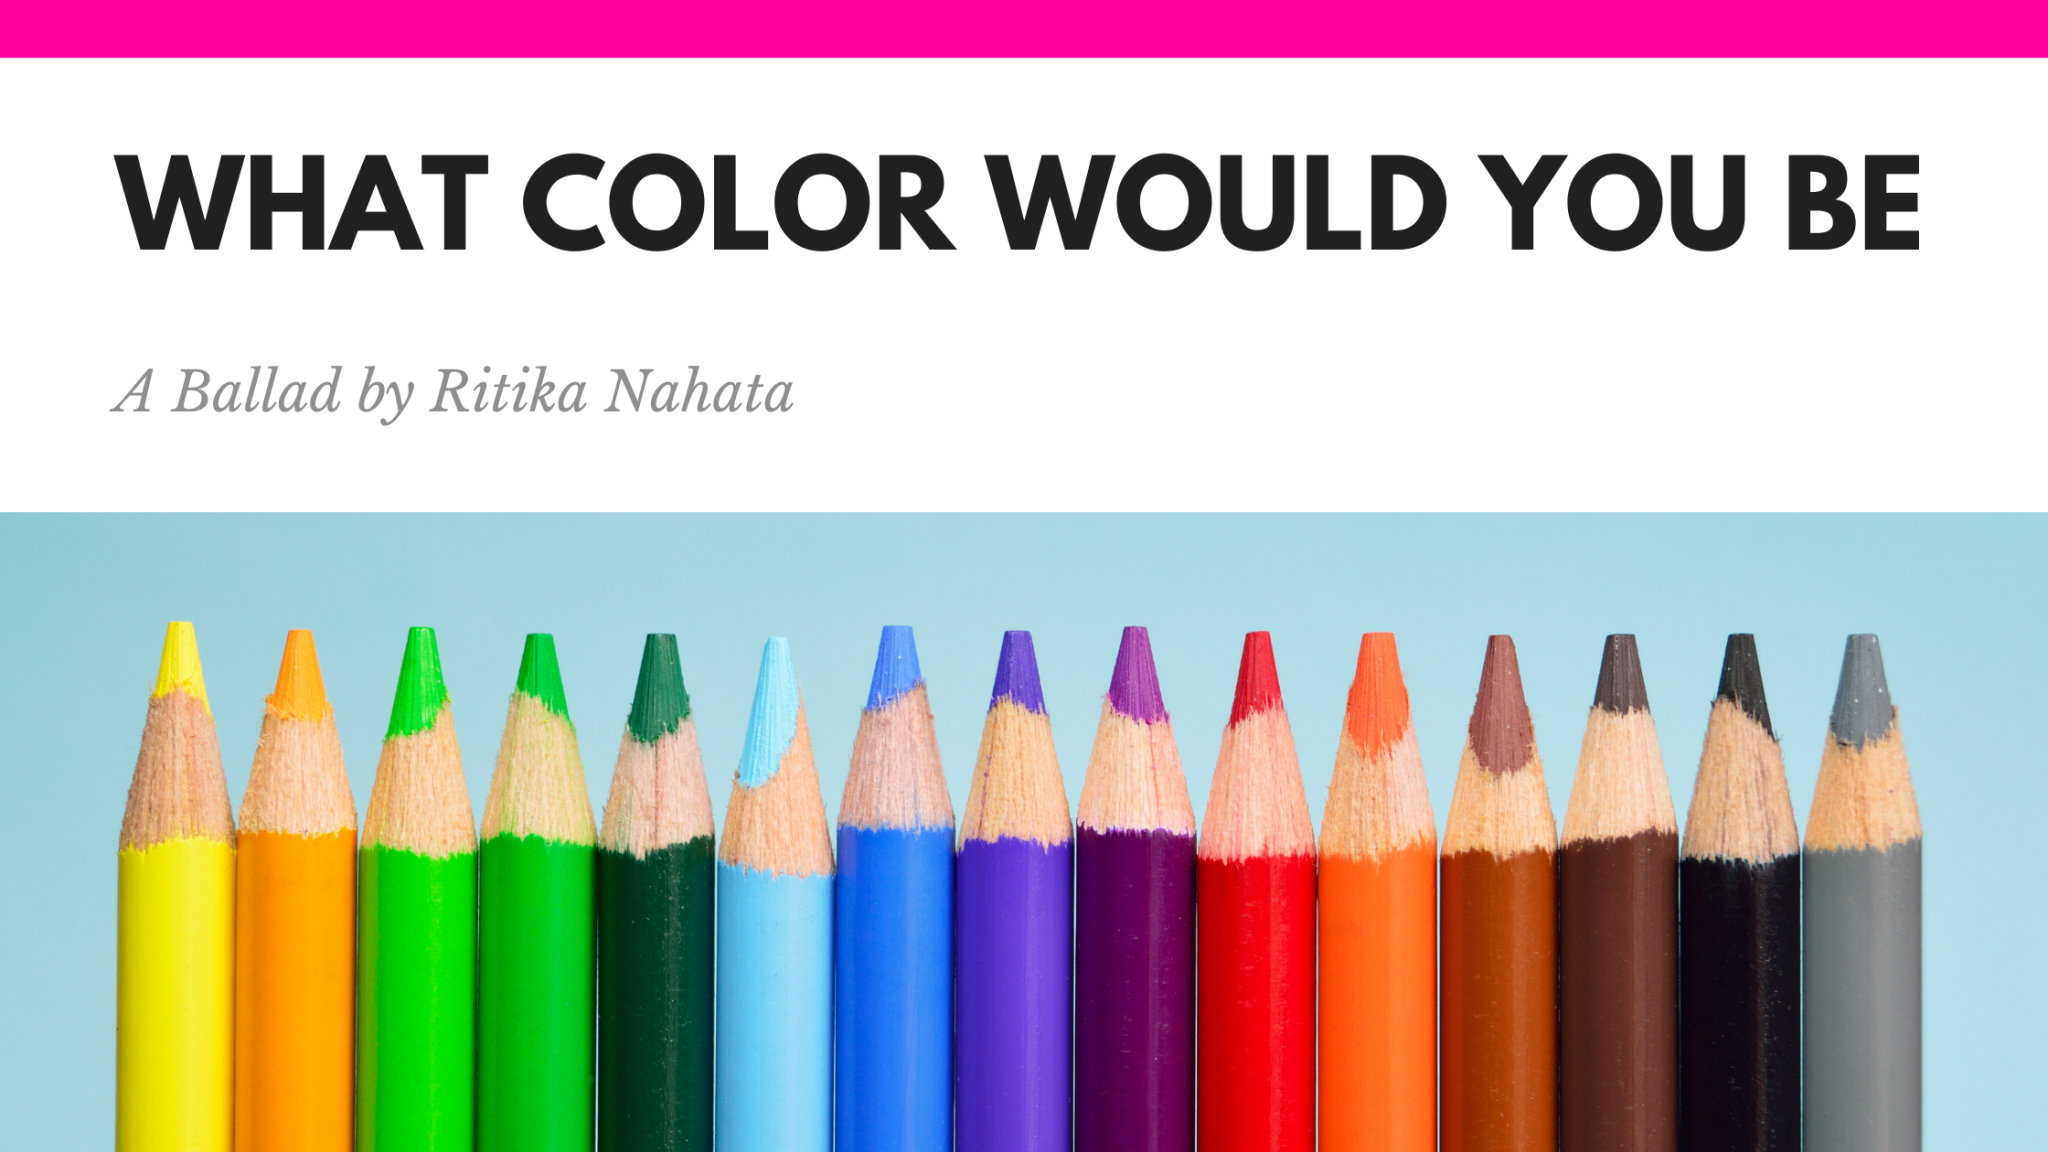 What color would you be -A Ballad by Ritika Nahata